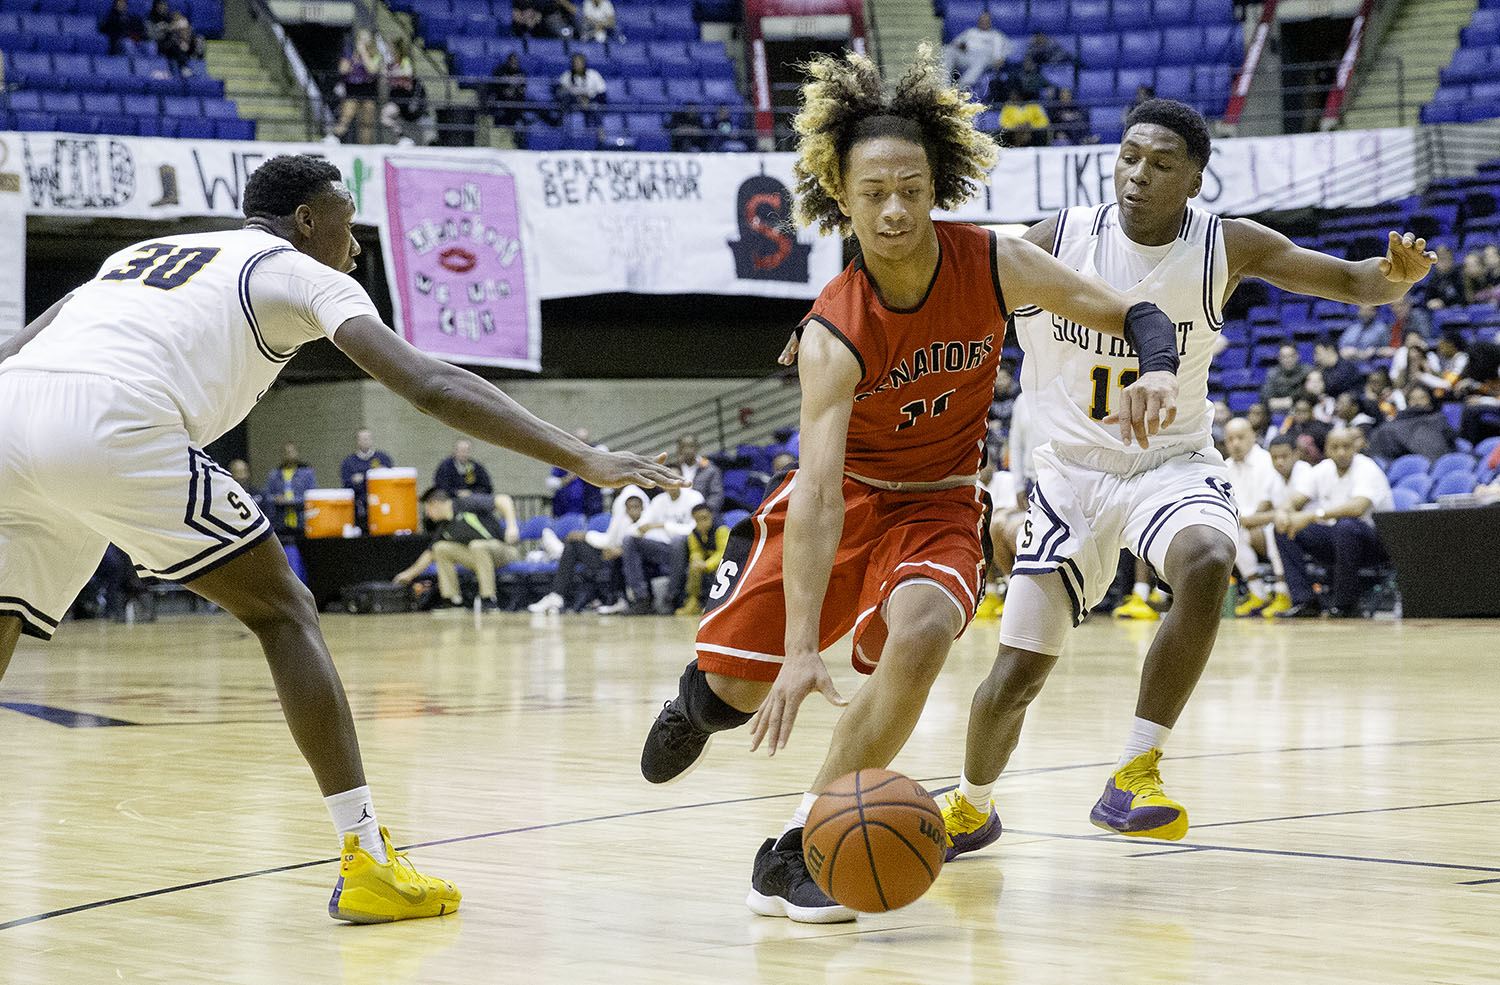 Springfield's Zaire Harris drives past Southeast's Devin Blue-Robinson during the Boys City Tournament at the Bank of Springfield Center Thursday, Jan. 17, 2019.  [Ted Schurter/The State Journal-Register]